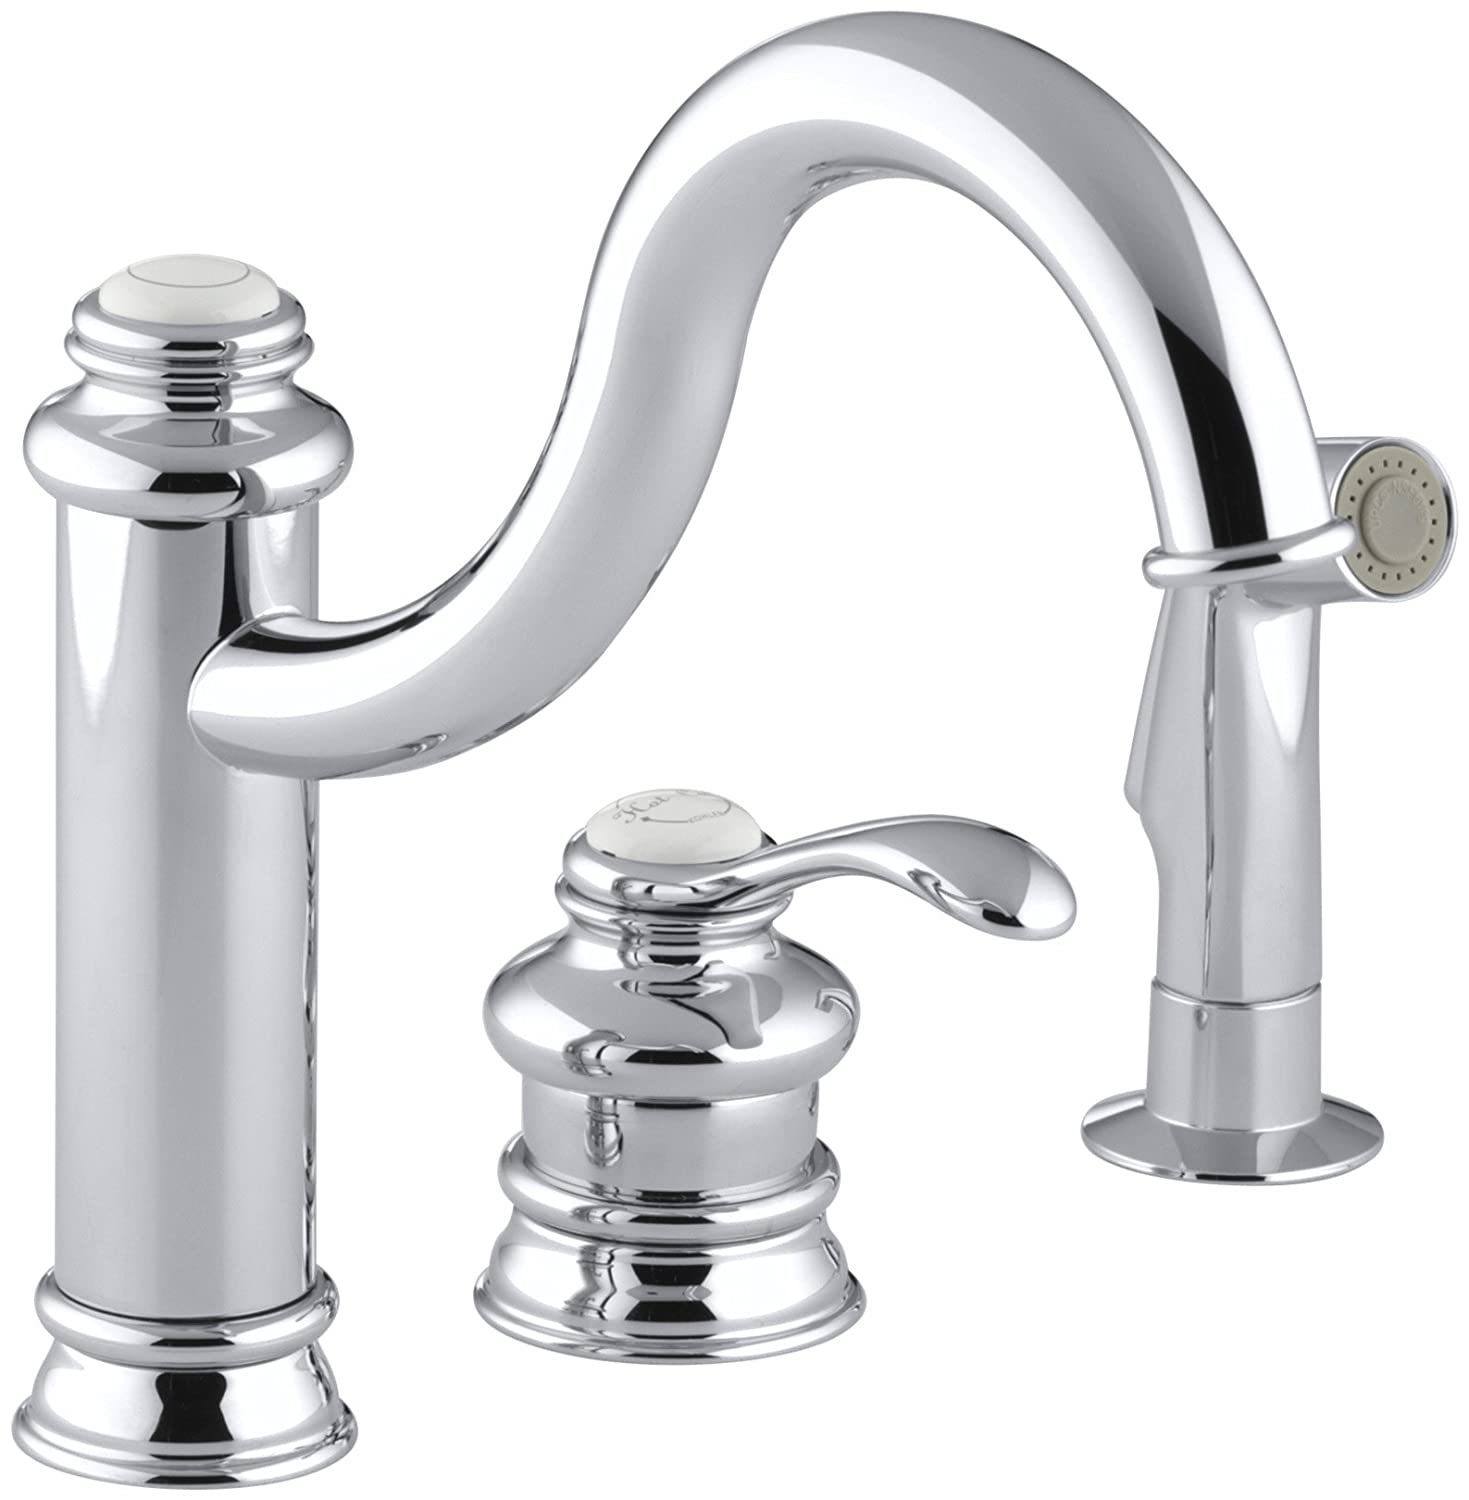 KOHLER K 12185 BN Fairfax Single Control Remote Valve Kitchen Sink Faucet,  Vibrant Brushed Nickel   Touch On Kitchen Sink Faucets   Amazon.com